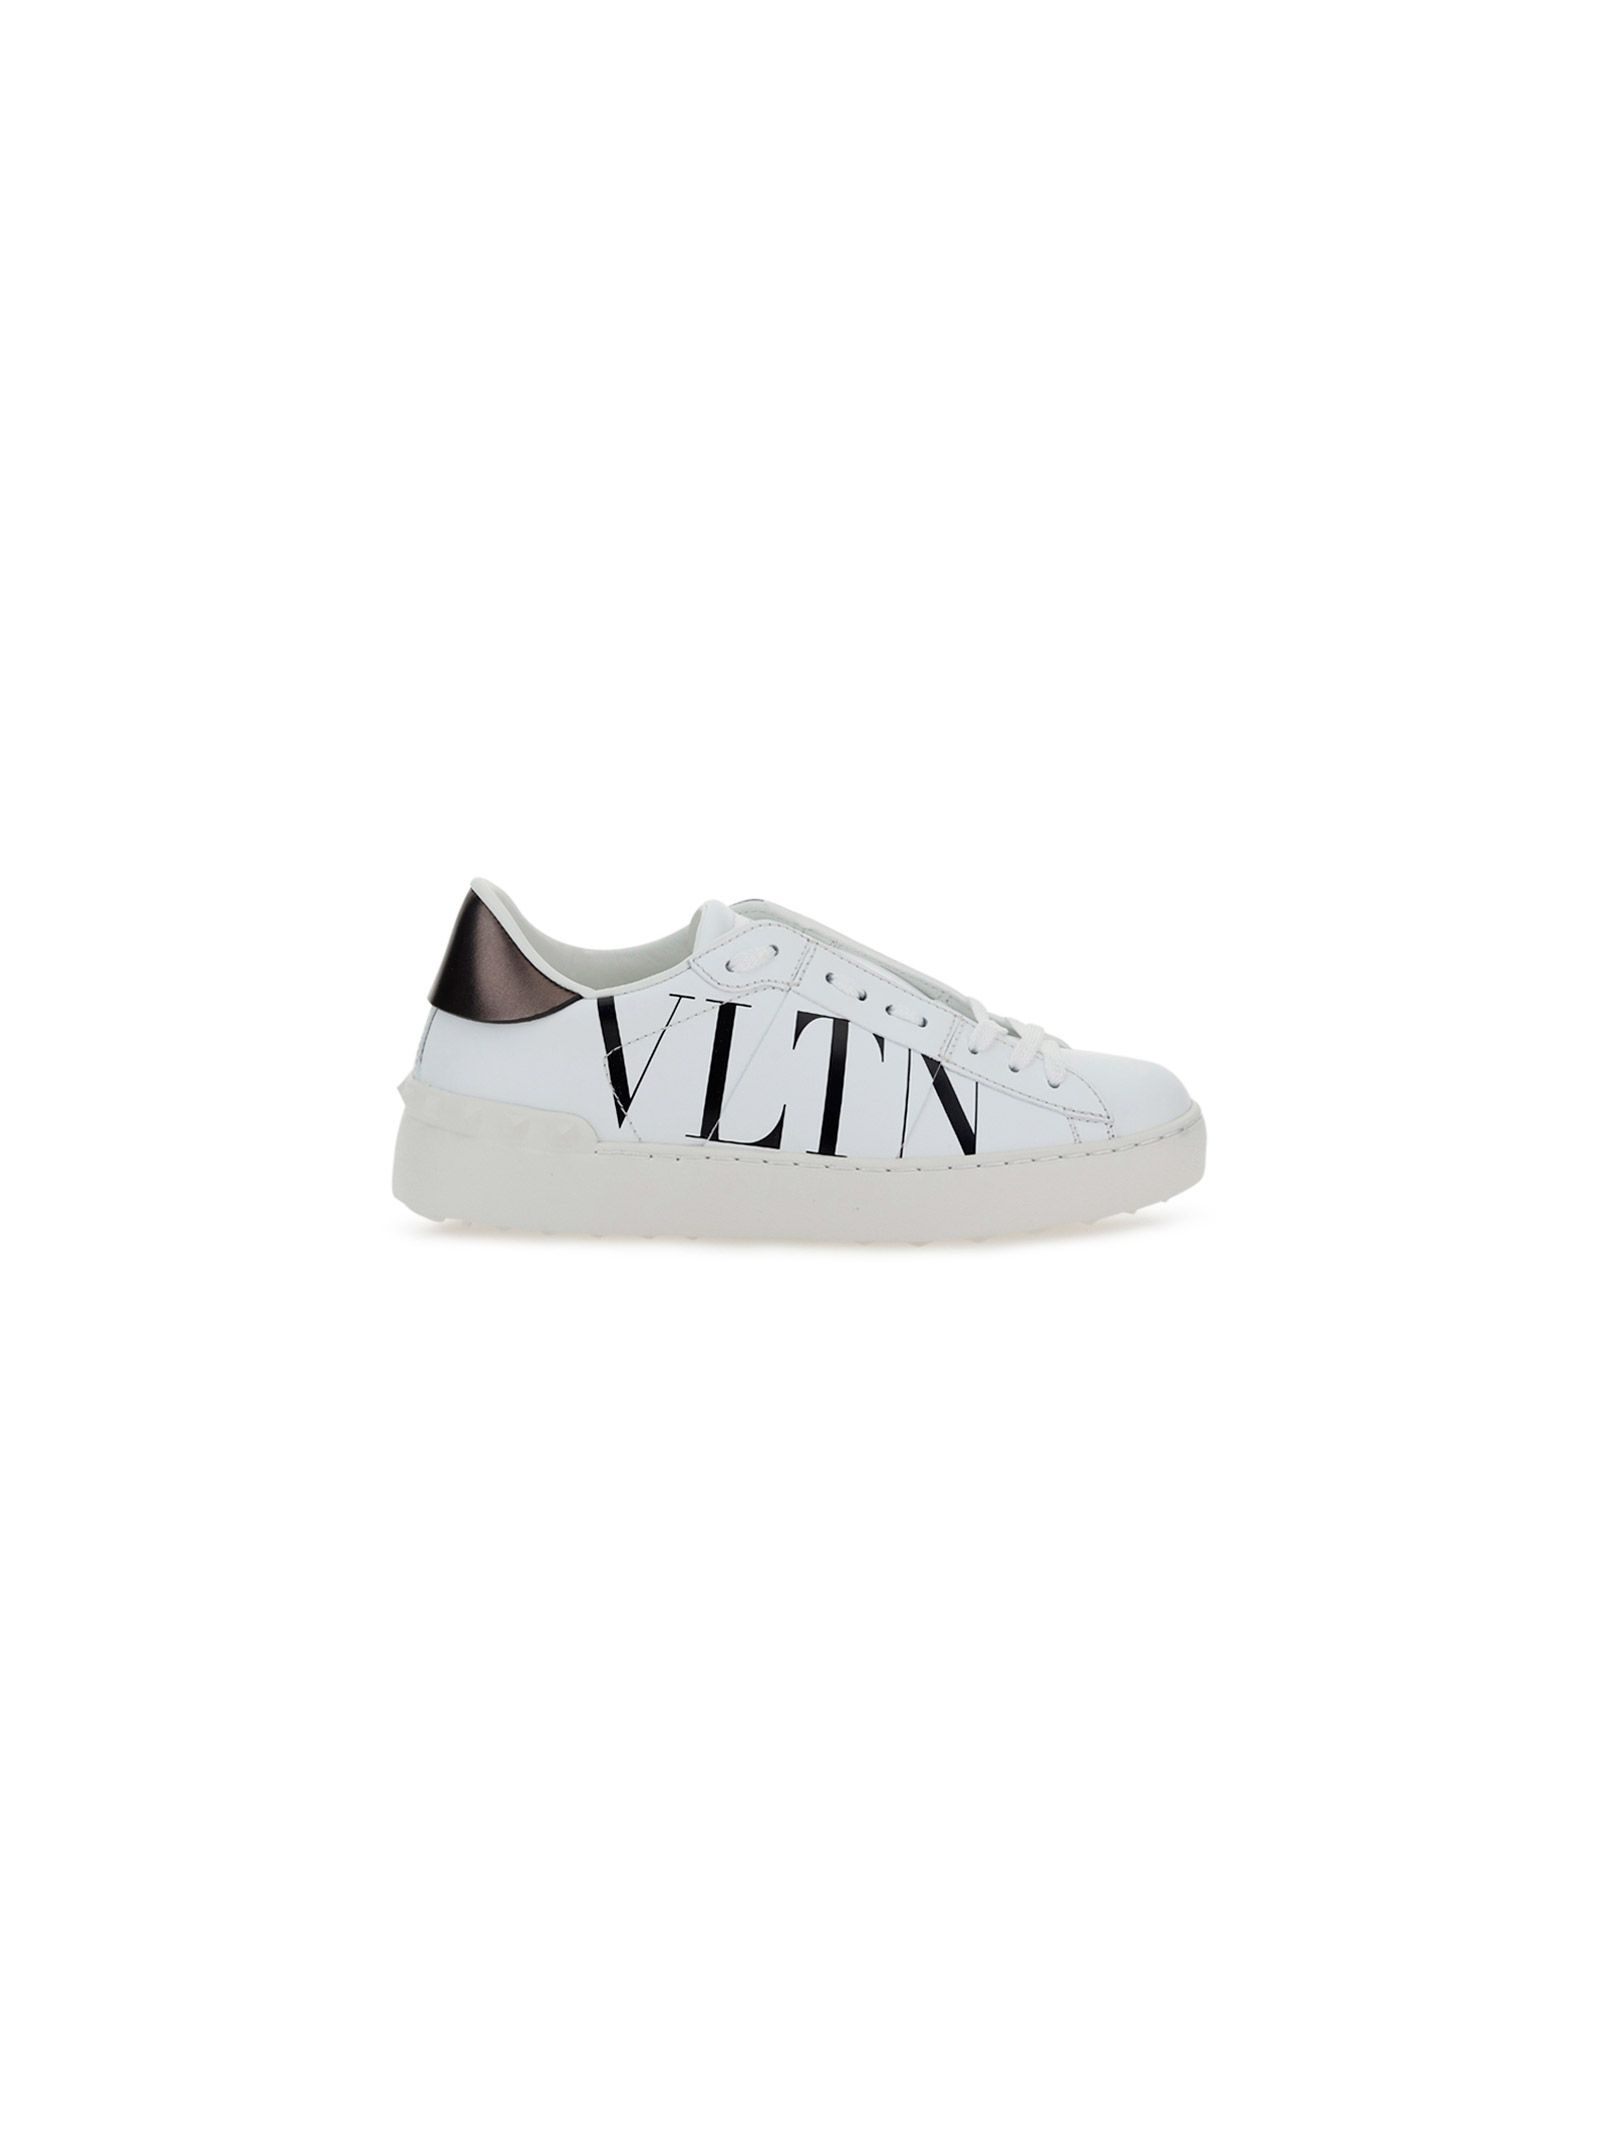 Valentino VALENTINO GARAVANI WOMEN'S WHITE OTHER MATERIALS SNEAKERS